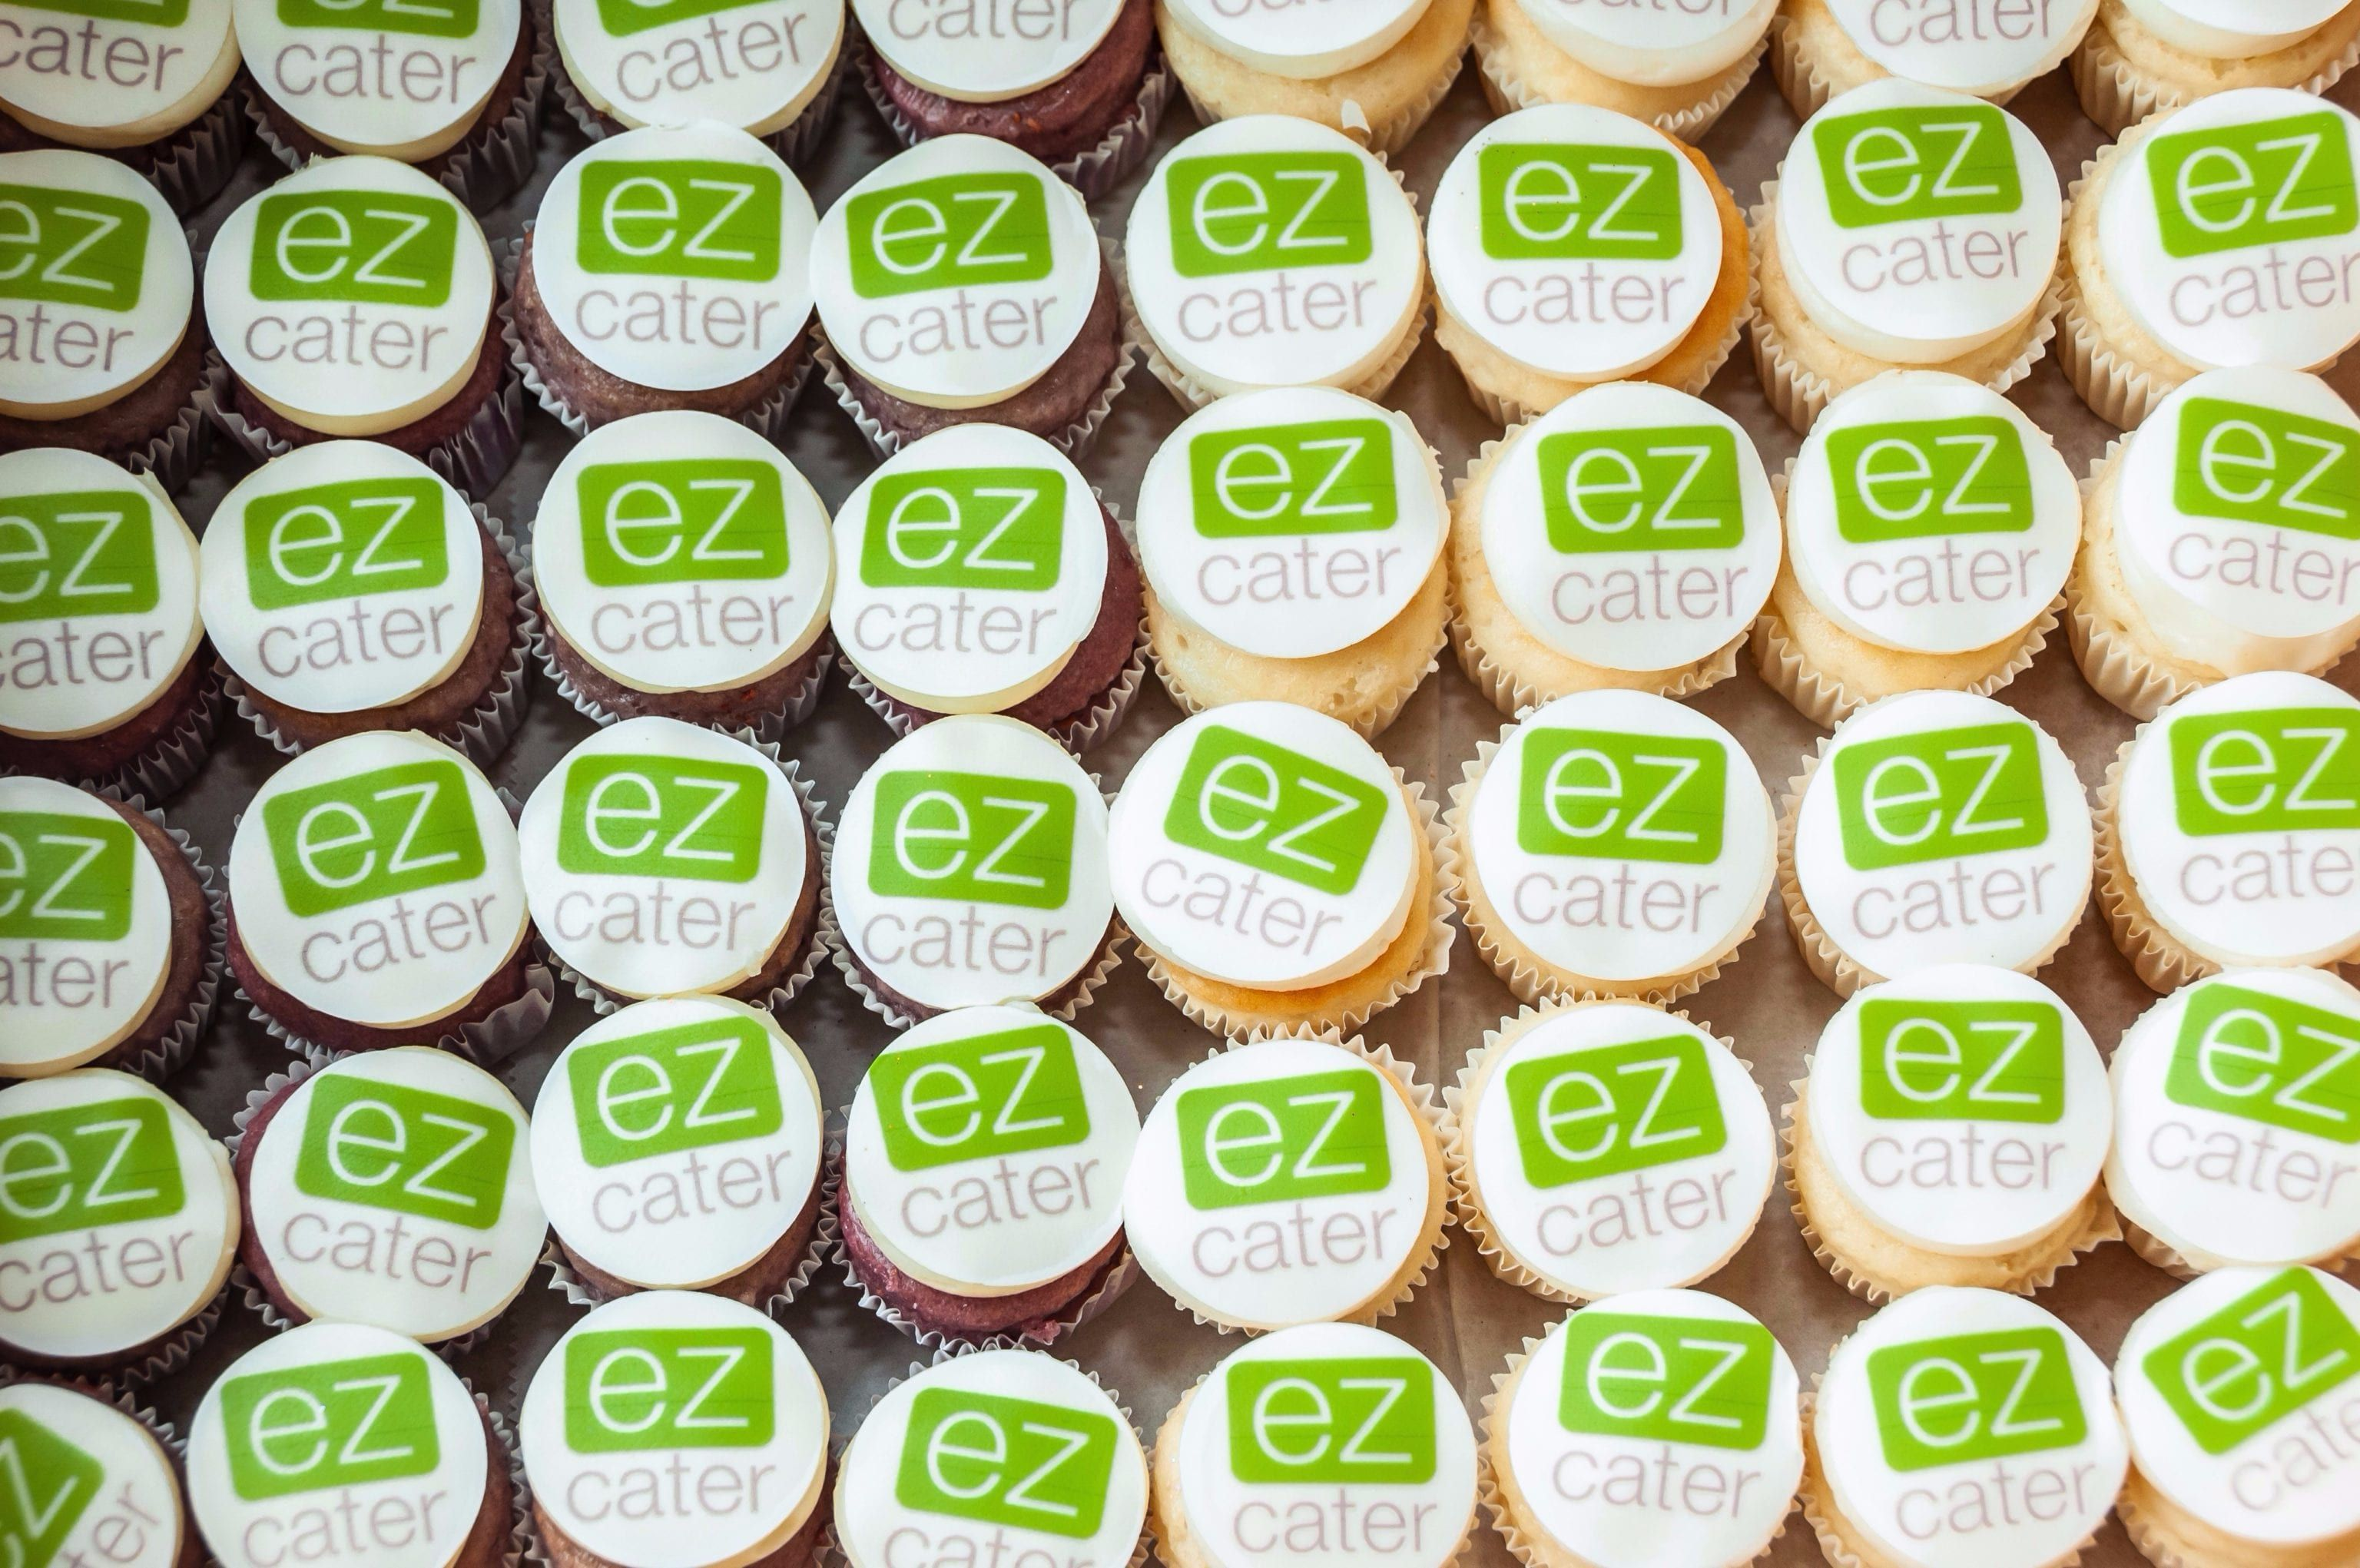 Working at ezCater's Denver office comes with the support of your teammates and managers and plenty of cupcakes, too.